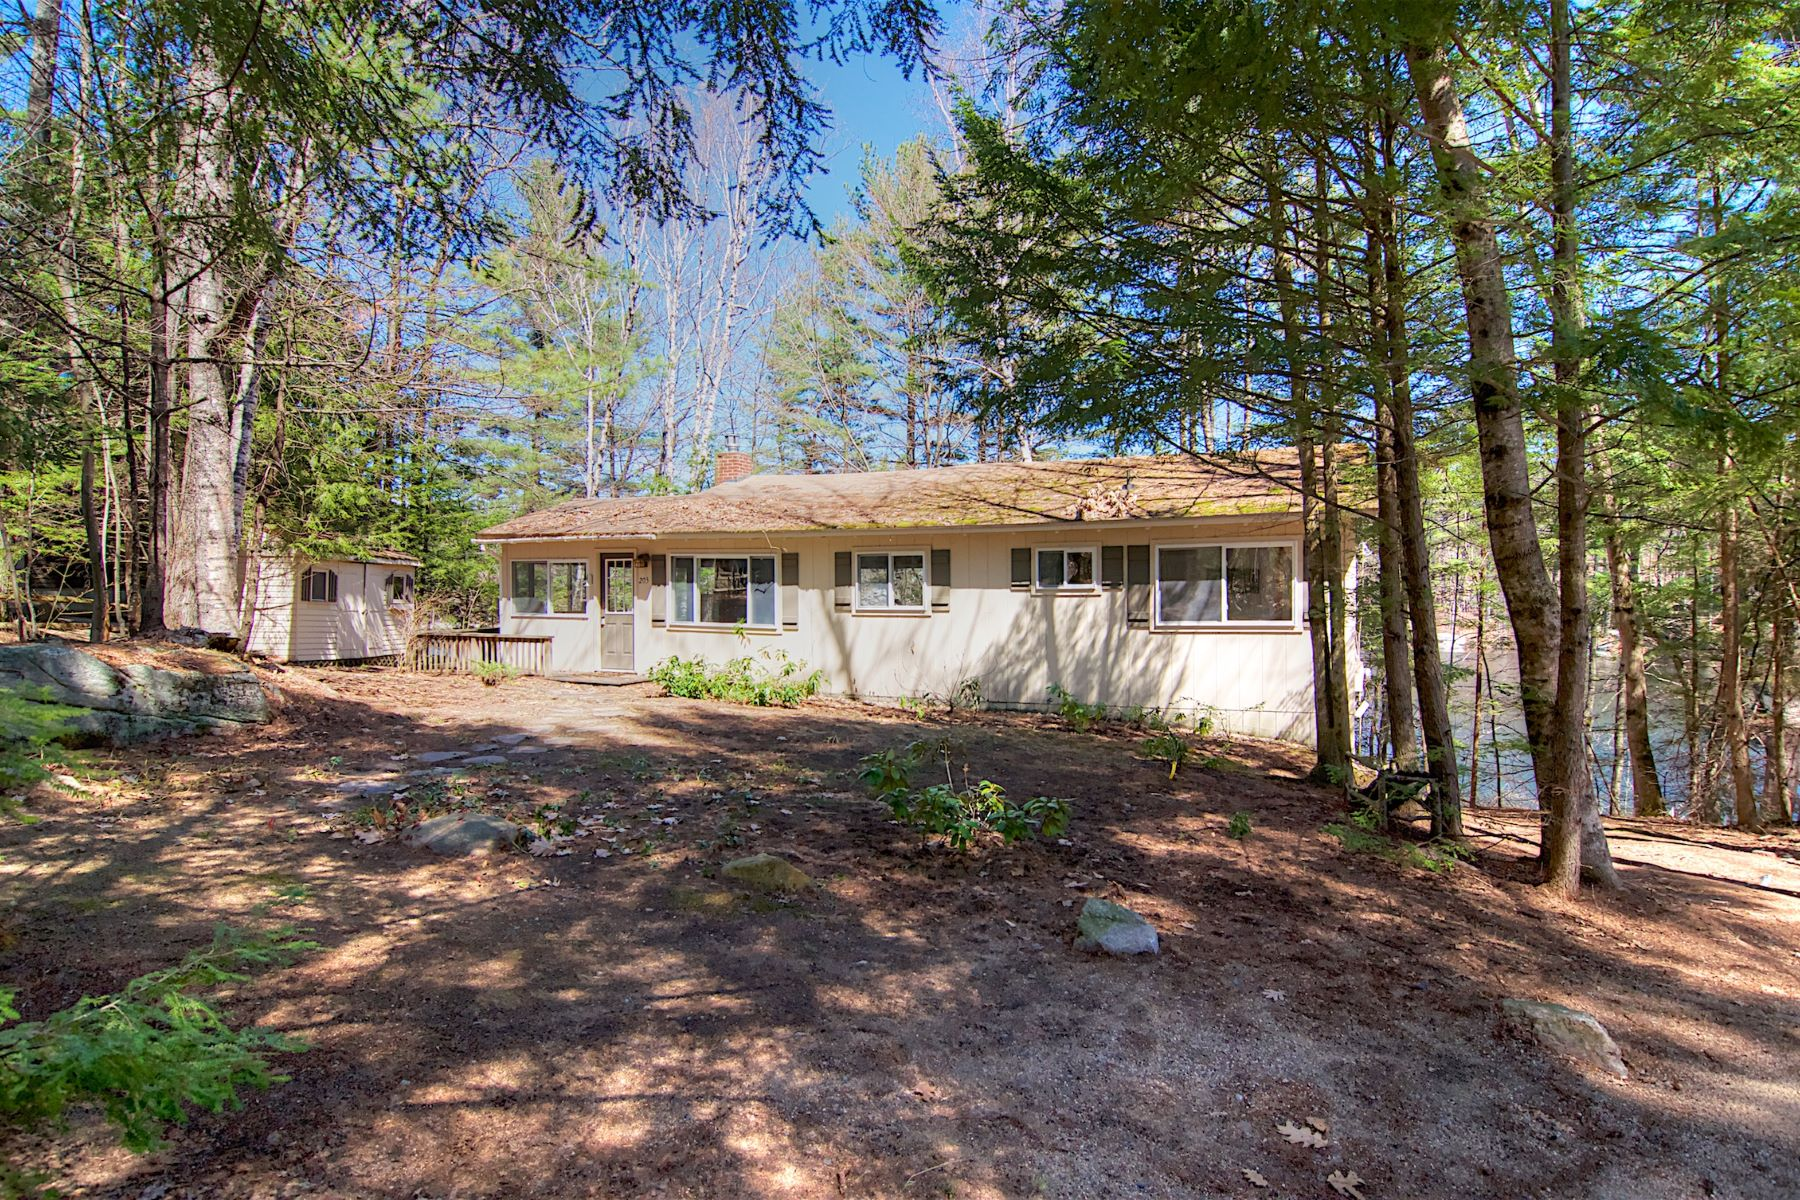 Single Family Home for Sale at Stanyan Road on Lake Winnipesaukee 205 Stanyan Moultonborough, New Hampshire 03254 United States